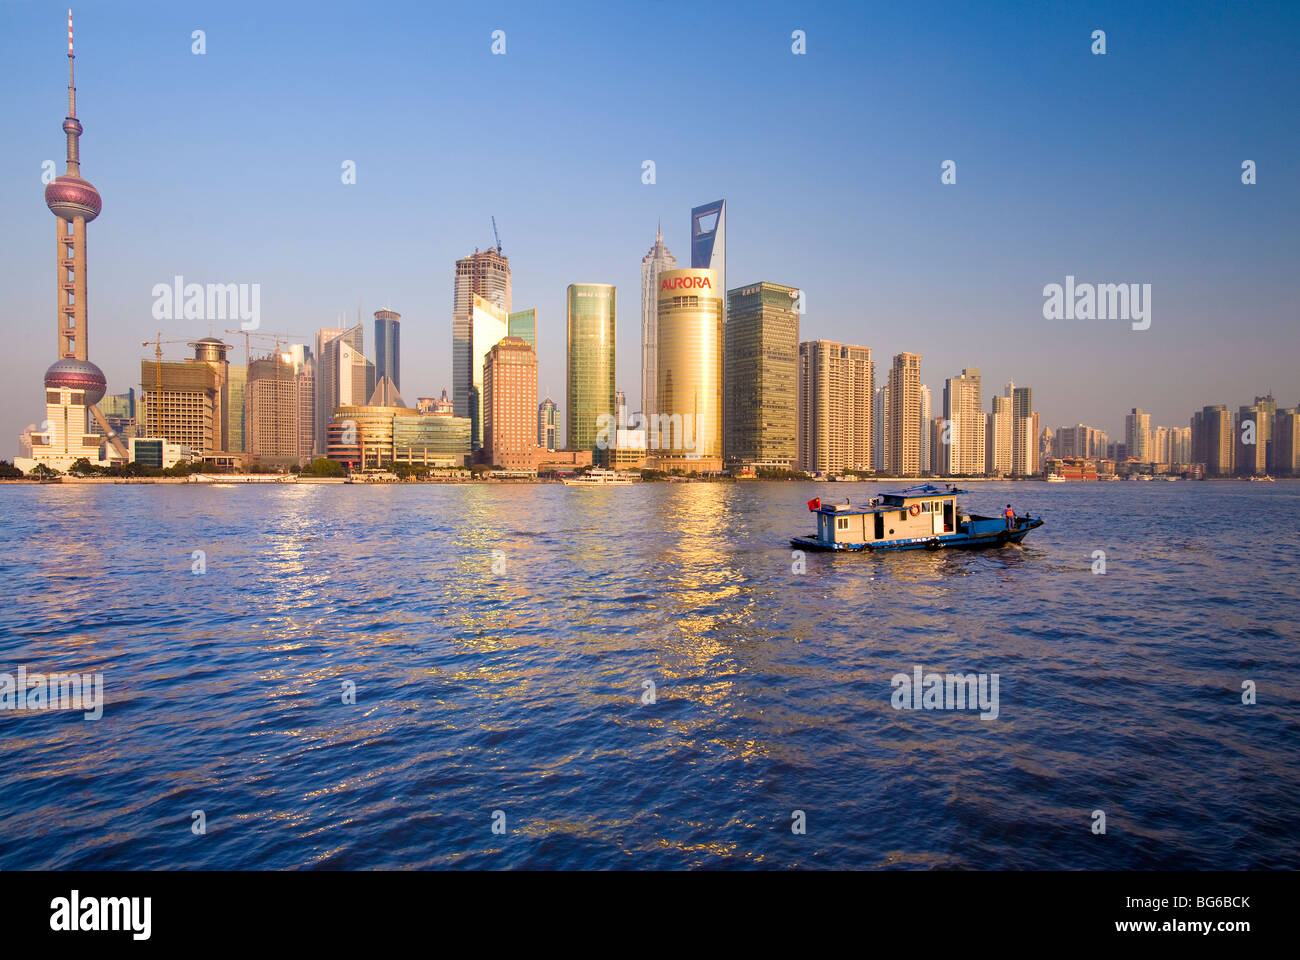 Pudong, Shanghai, Chine Photo Stock